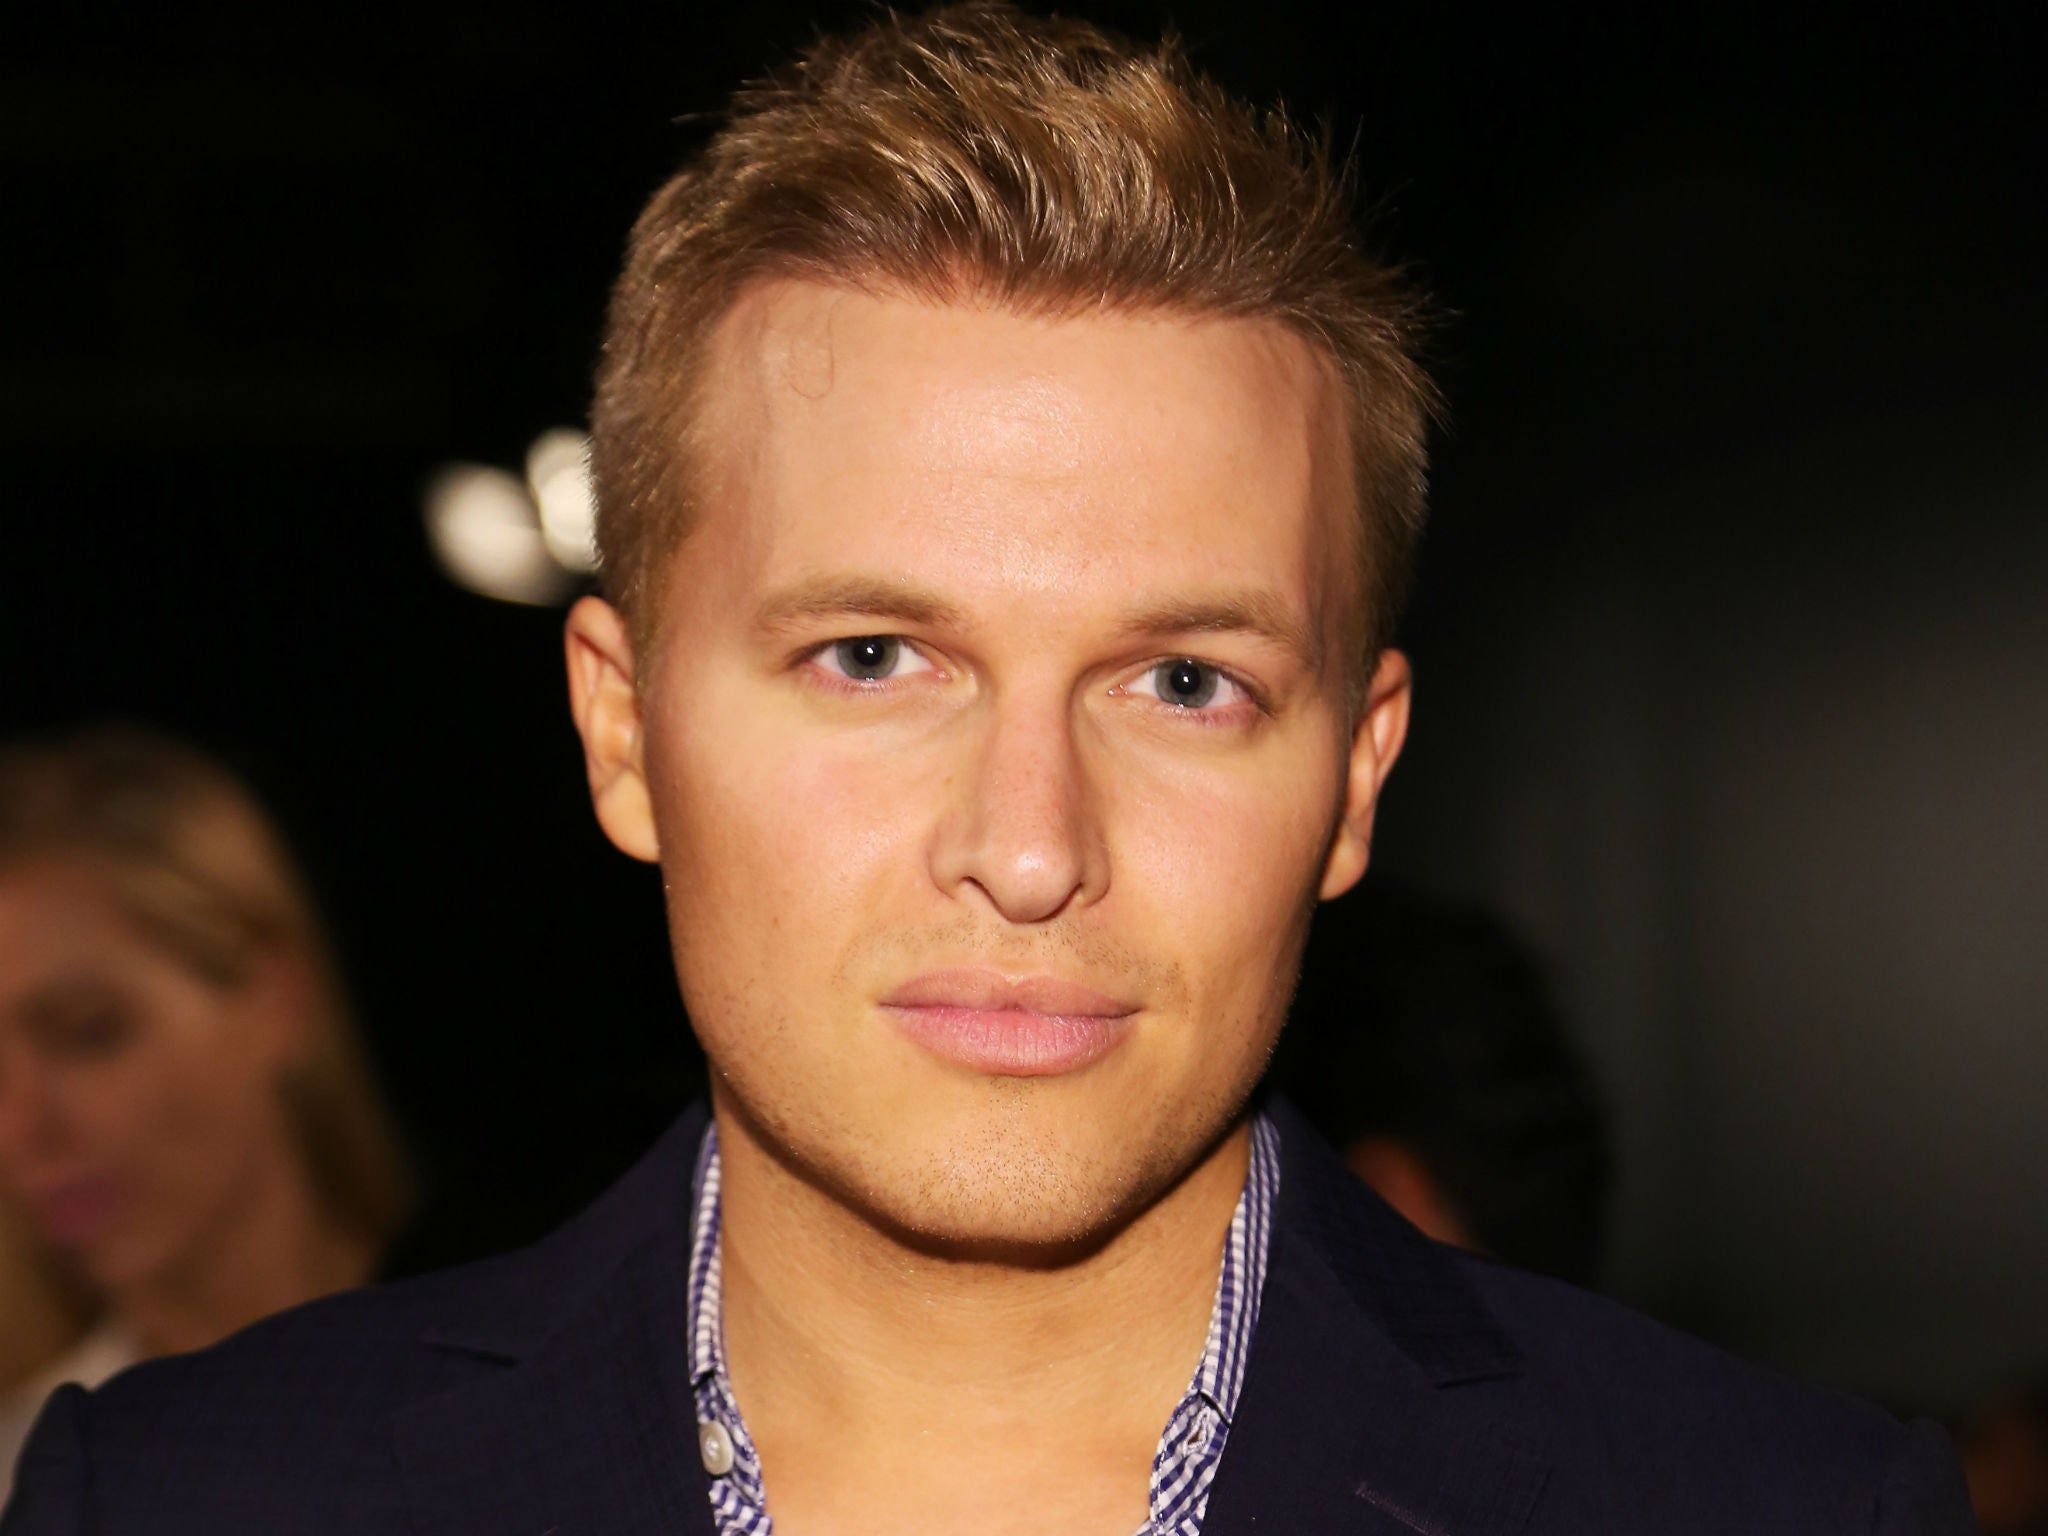 https://static.independent.co.uk/s3fs-public/thumbnails/image/2016/05/11/17/ronan-farrow.jpg